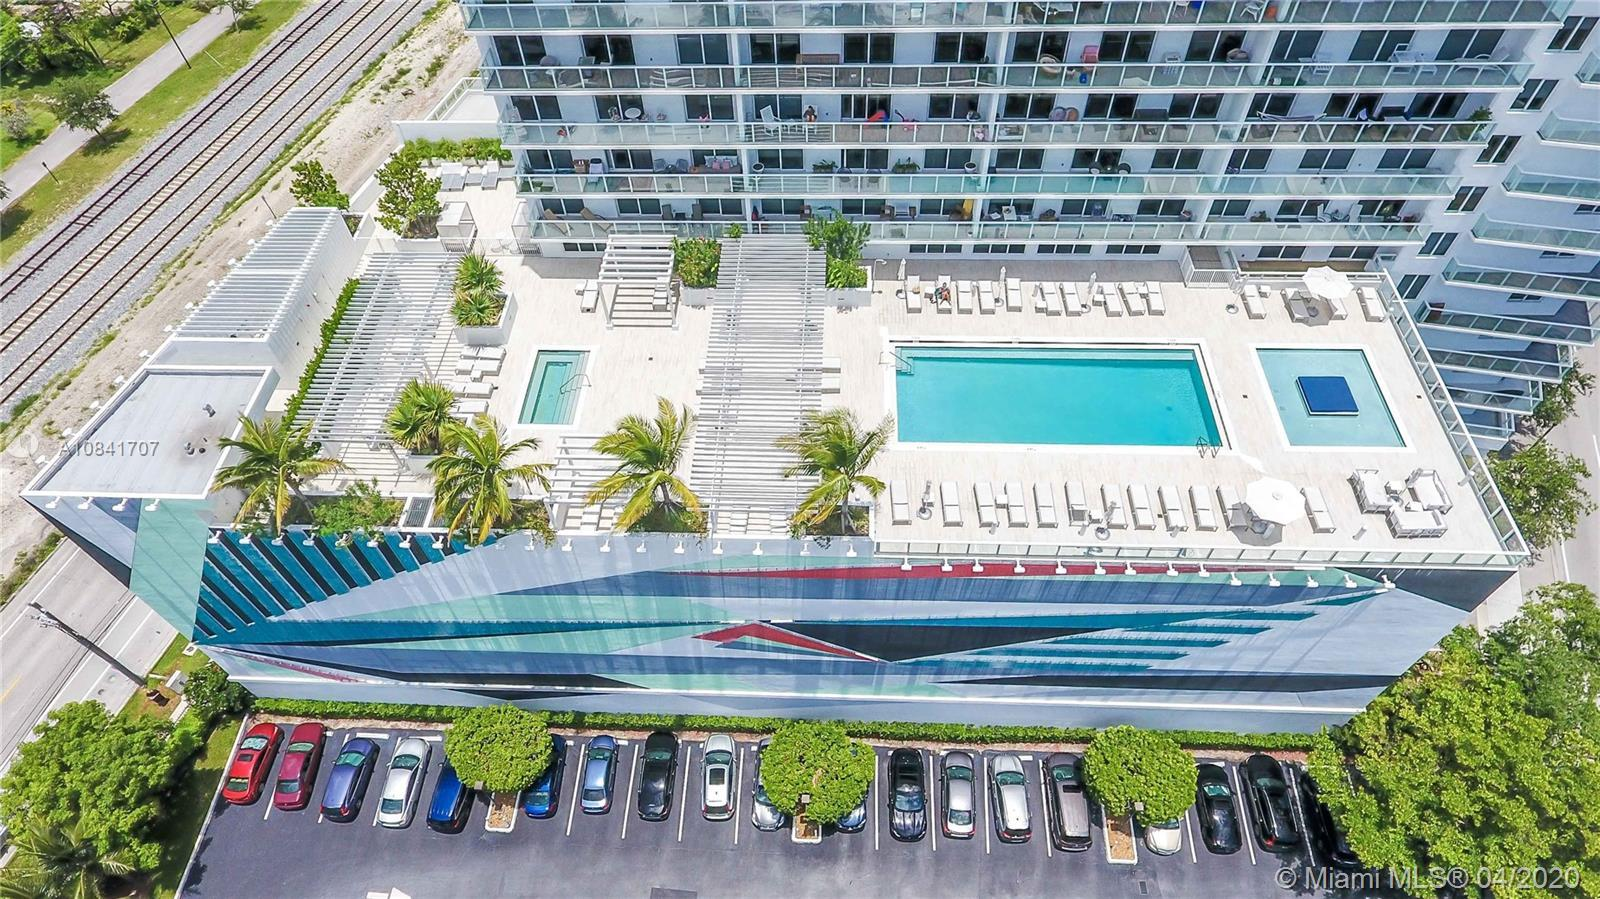 Boutique Condo development, just steps from Miami Design District, and close to Midtown & Wynwood. L